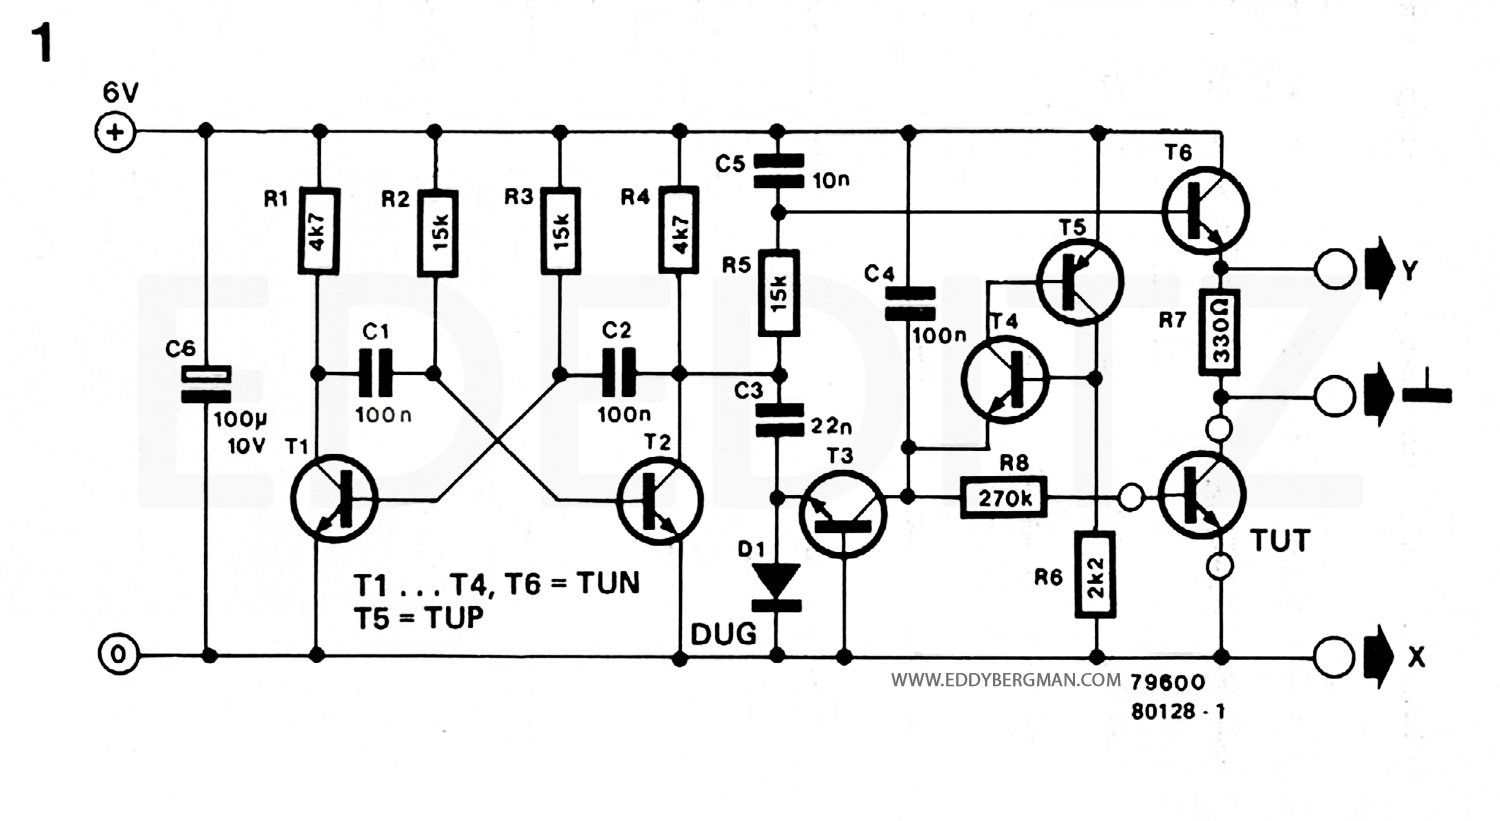 hight resolution of i was impressed by the simplicity and effectiveness of this little circuit and since i didn t see it available on the internet i thought i d share it with